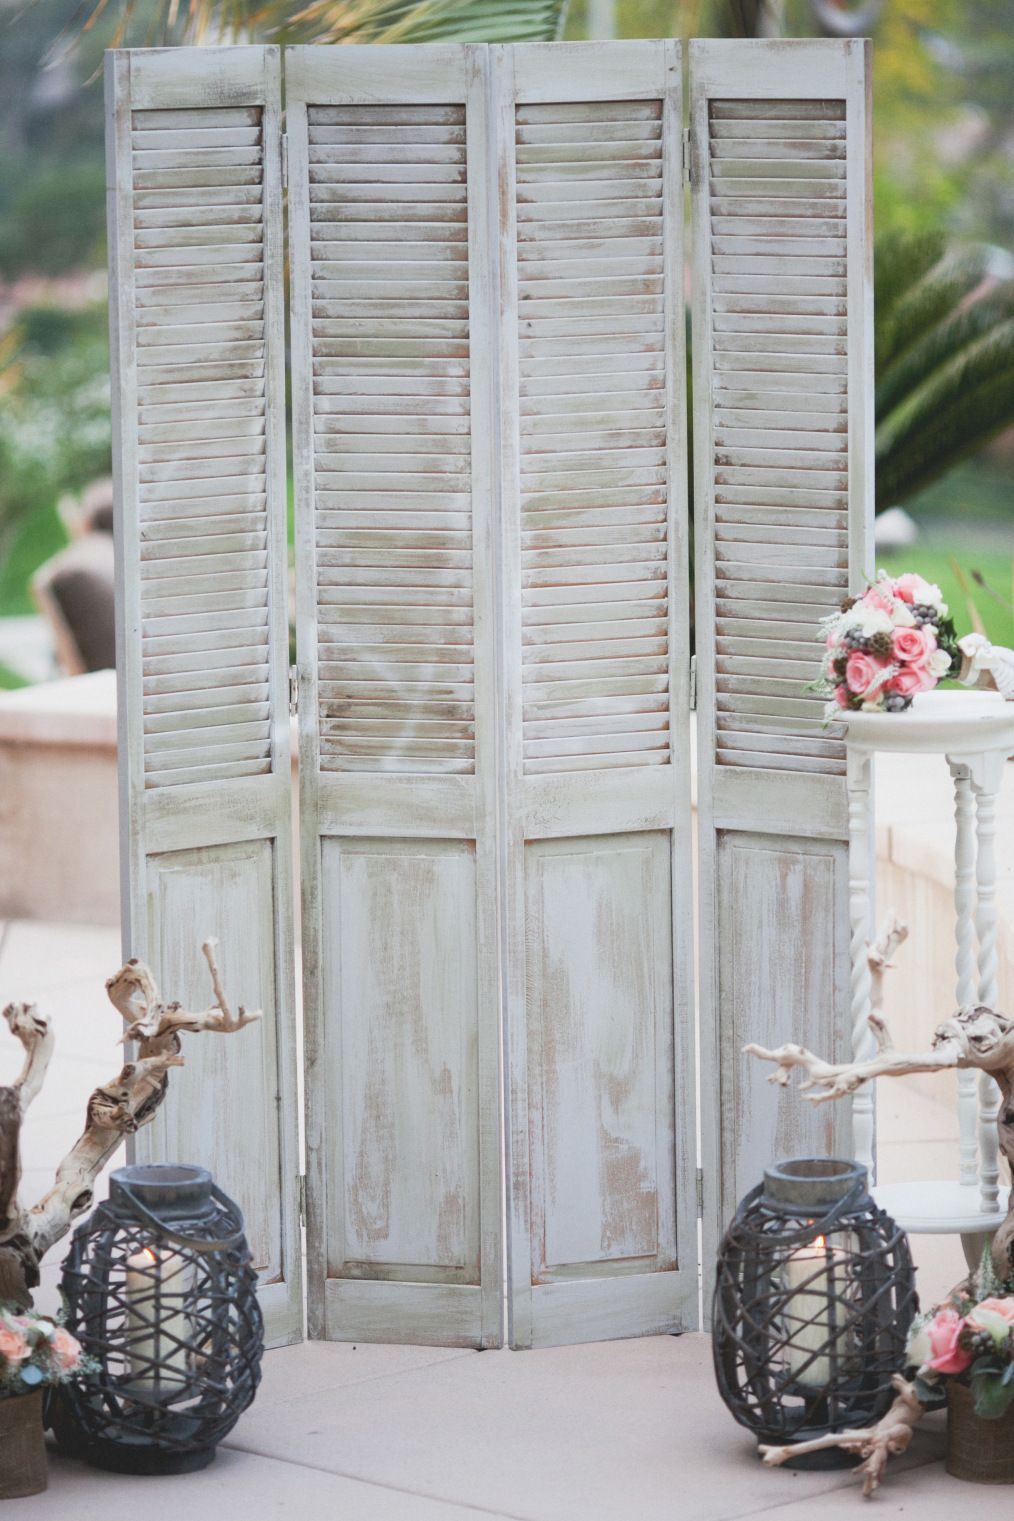 I am such a big fan of vintage shutters.  Drape lace on these and they would make a great backdrop for something, somewhere.